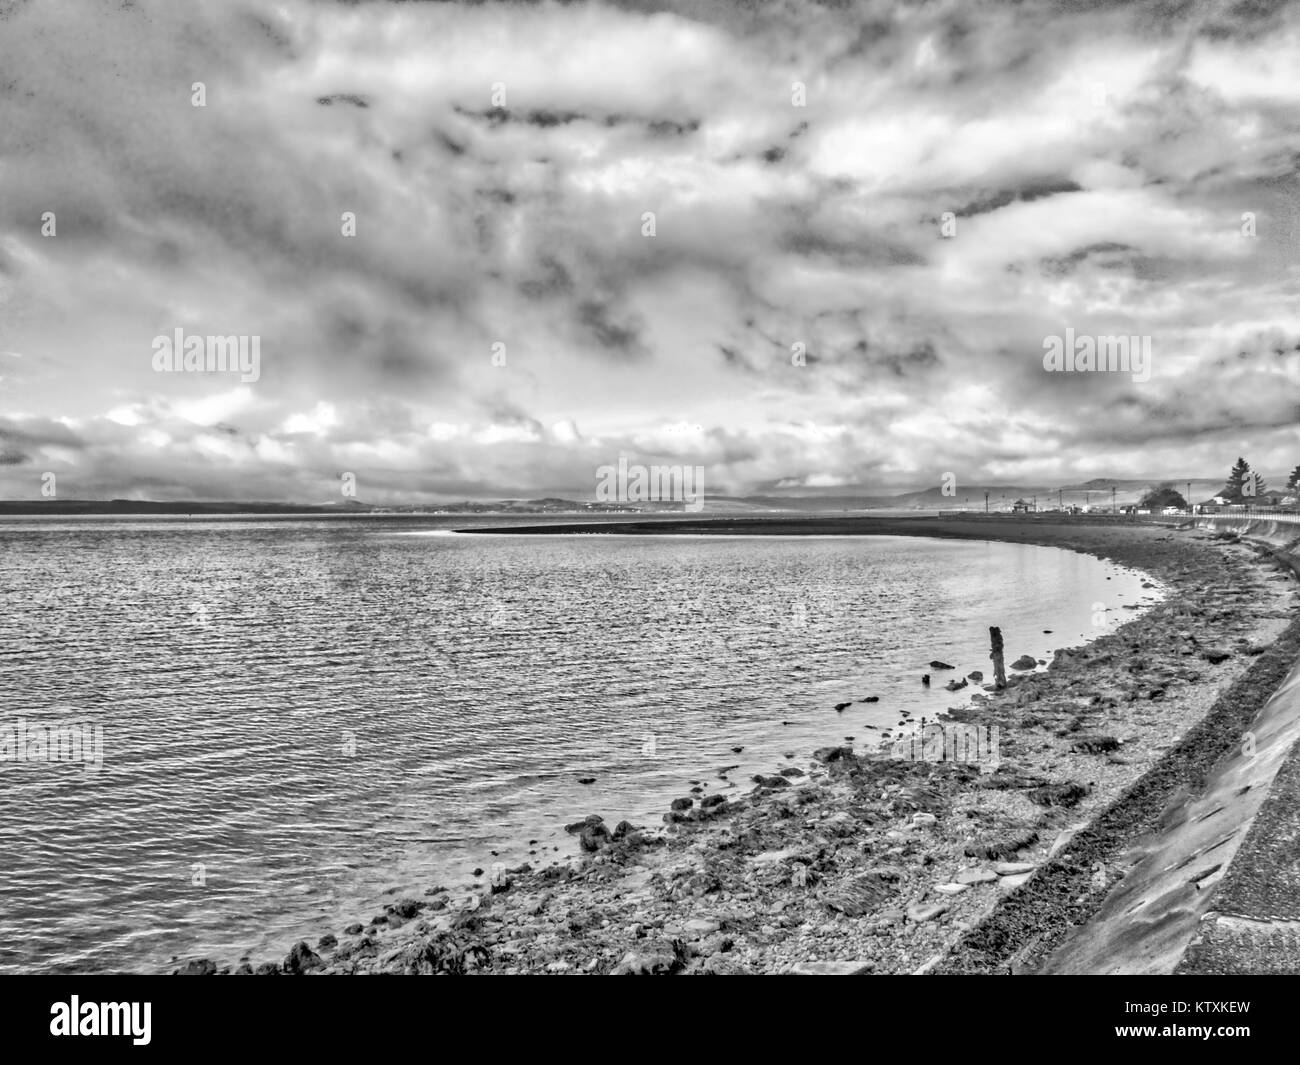 Largs Holiday Town & Seafront - Stock Image